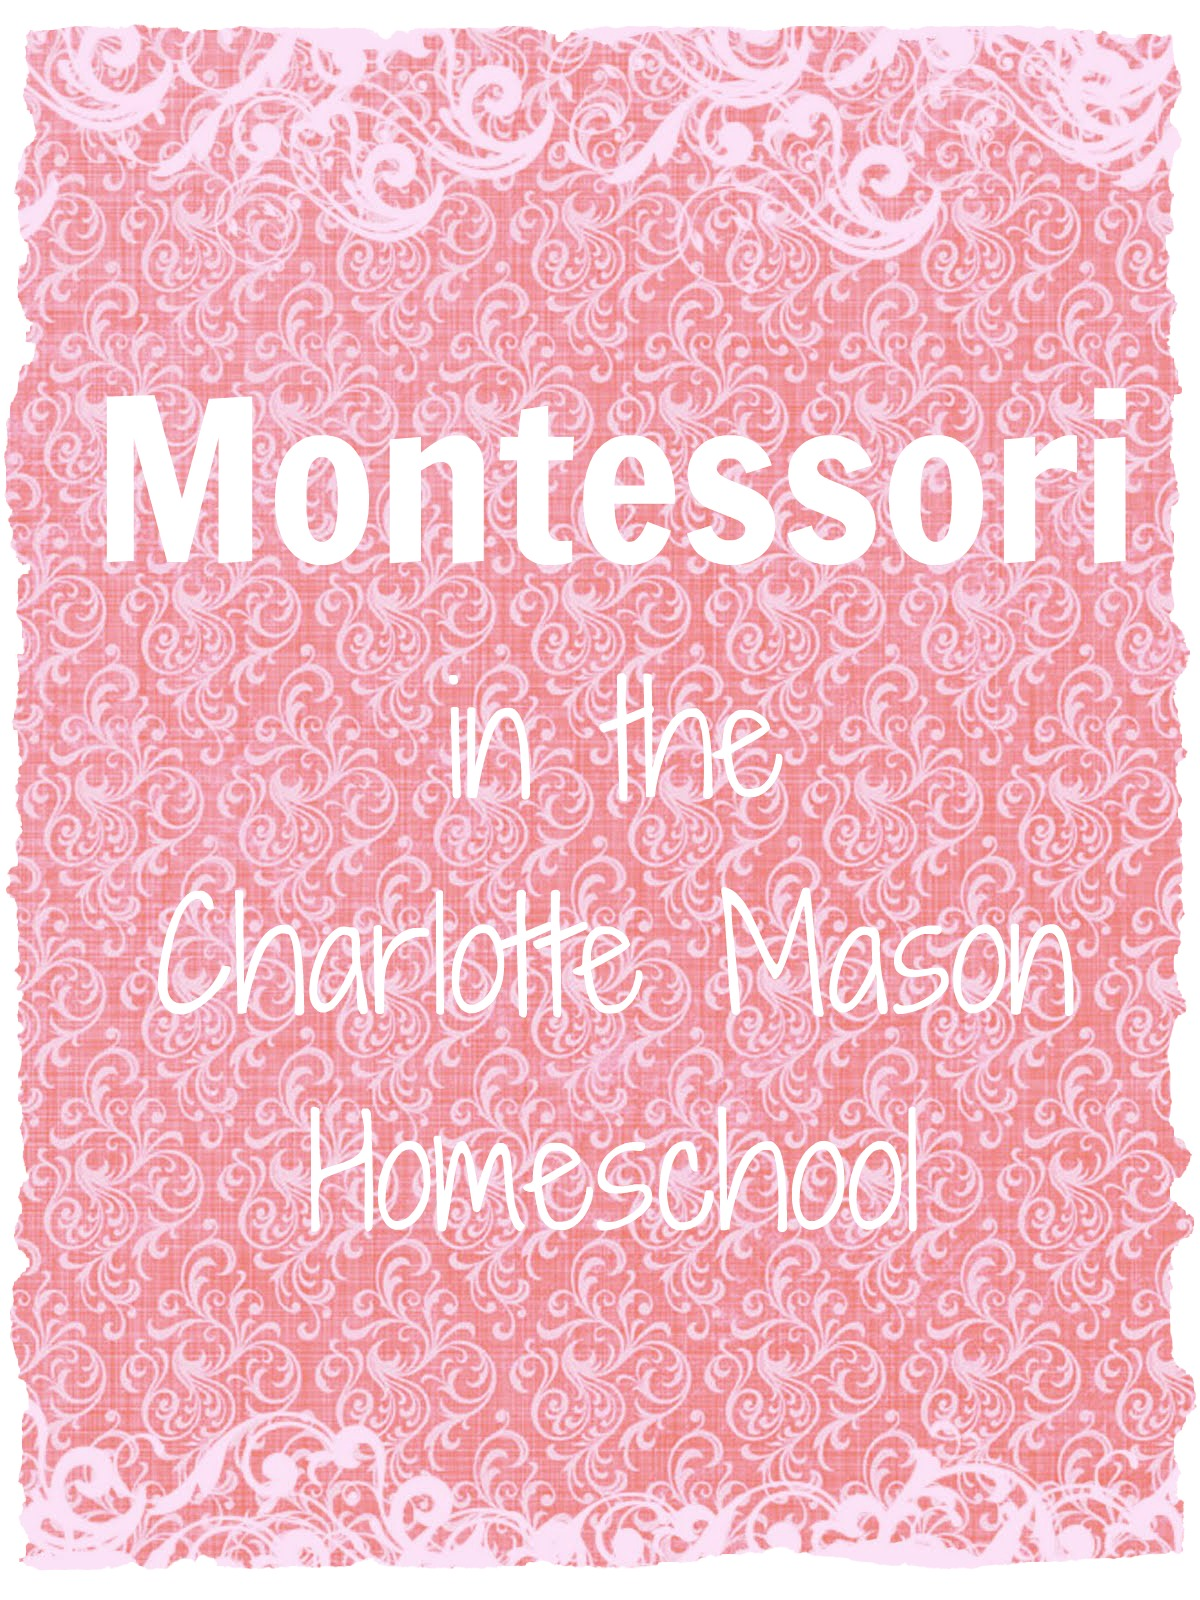 Montessori in a Charlotte Mason Homeschool